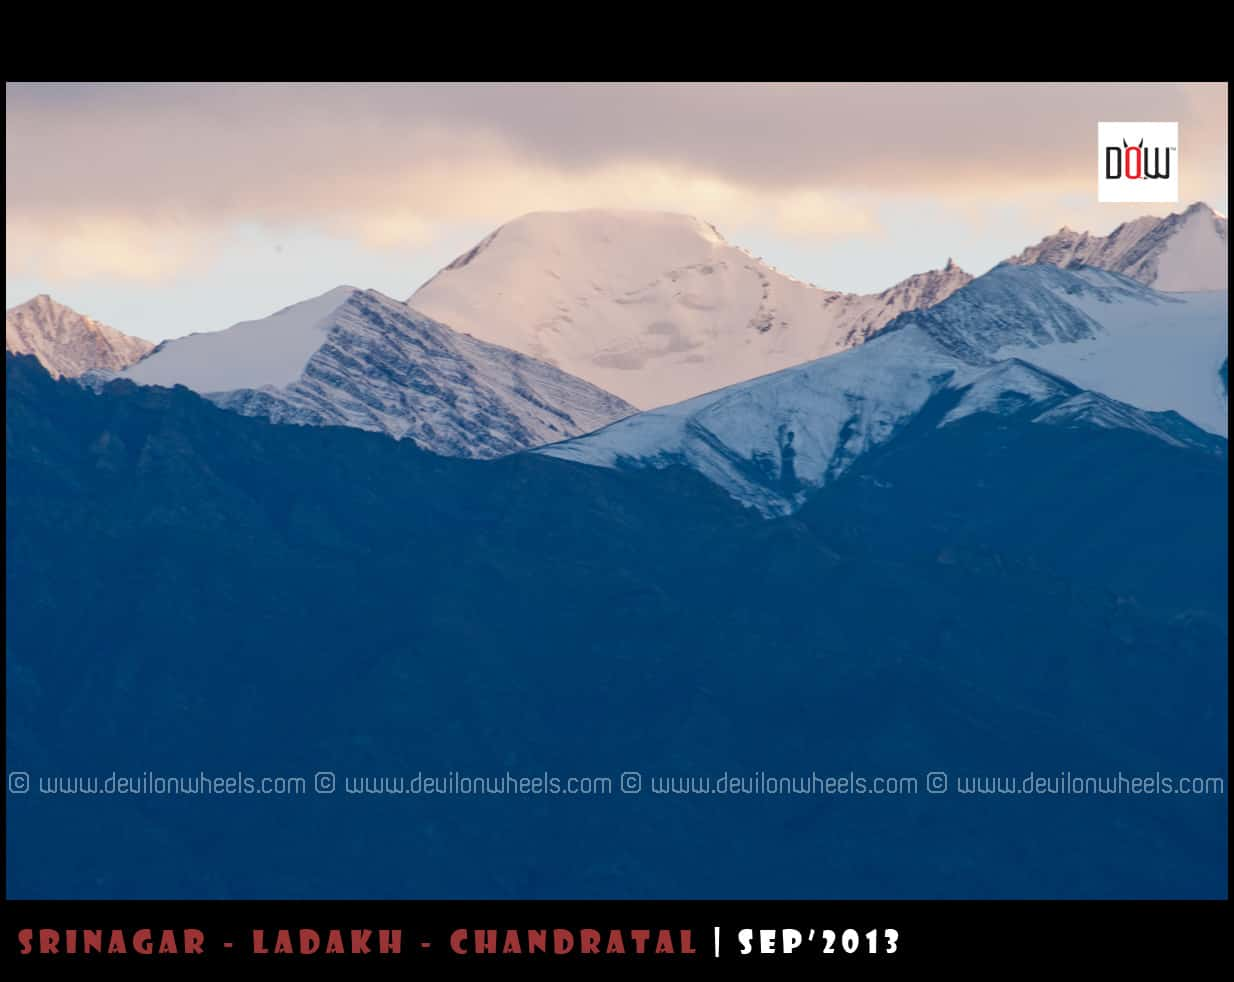 Close Up Shots of Stok Kangri Range